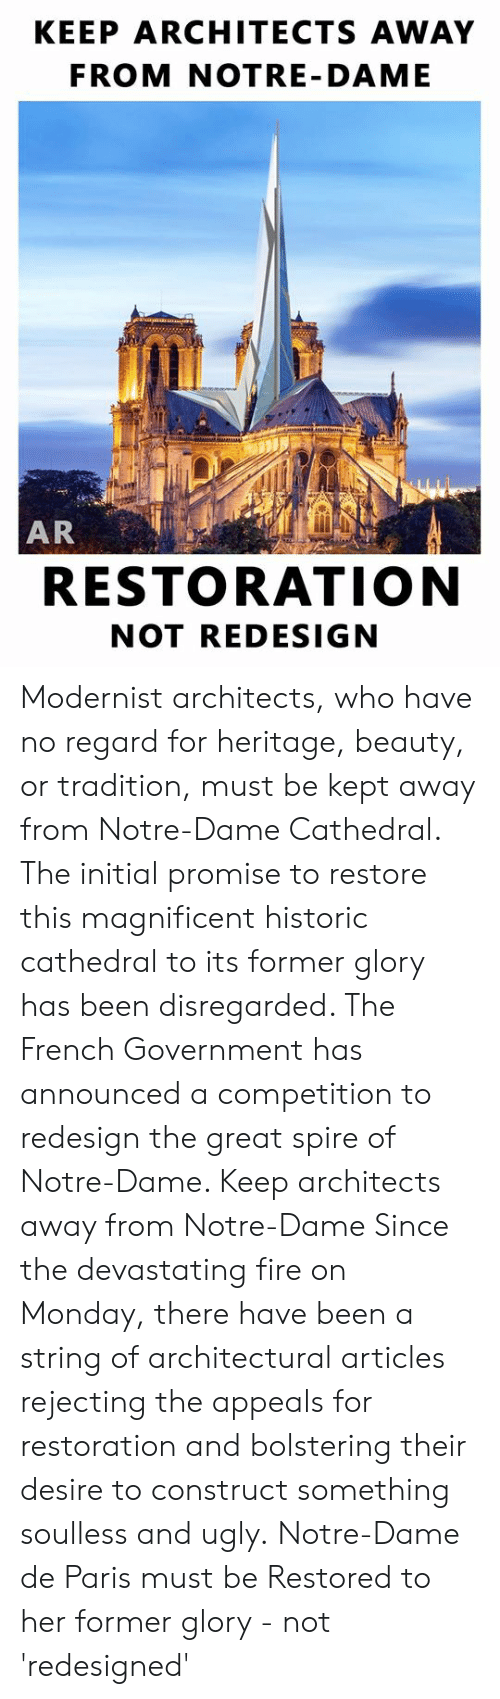 Restoration: KEEP ARCHITECTS AWAY  FROM NOTRE- DAME  AR  RESTORATION  NOT REDESIGN Modernist architects, who have no regard for heritage, beauty, or tradition, must be kept away from Notre-Dame Cathedral.  The initial promise to restore this magnificent historic cathedral to its former glory has been disregarded. The French Government has announced a competition to redesign the great spire of Notre-Dame.   Keep architects away from Notre-Dame  Since the devastating fire on Monday, there have been a string of architectural articles rejecting the appeals for restoration and bolstering their desire to construct something soulless and ugly.  Notre-Dame de Paris must be Restored to her former glory - not 'redesigned'